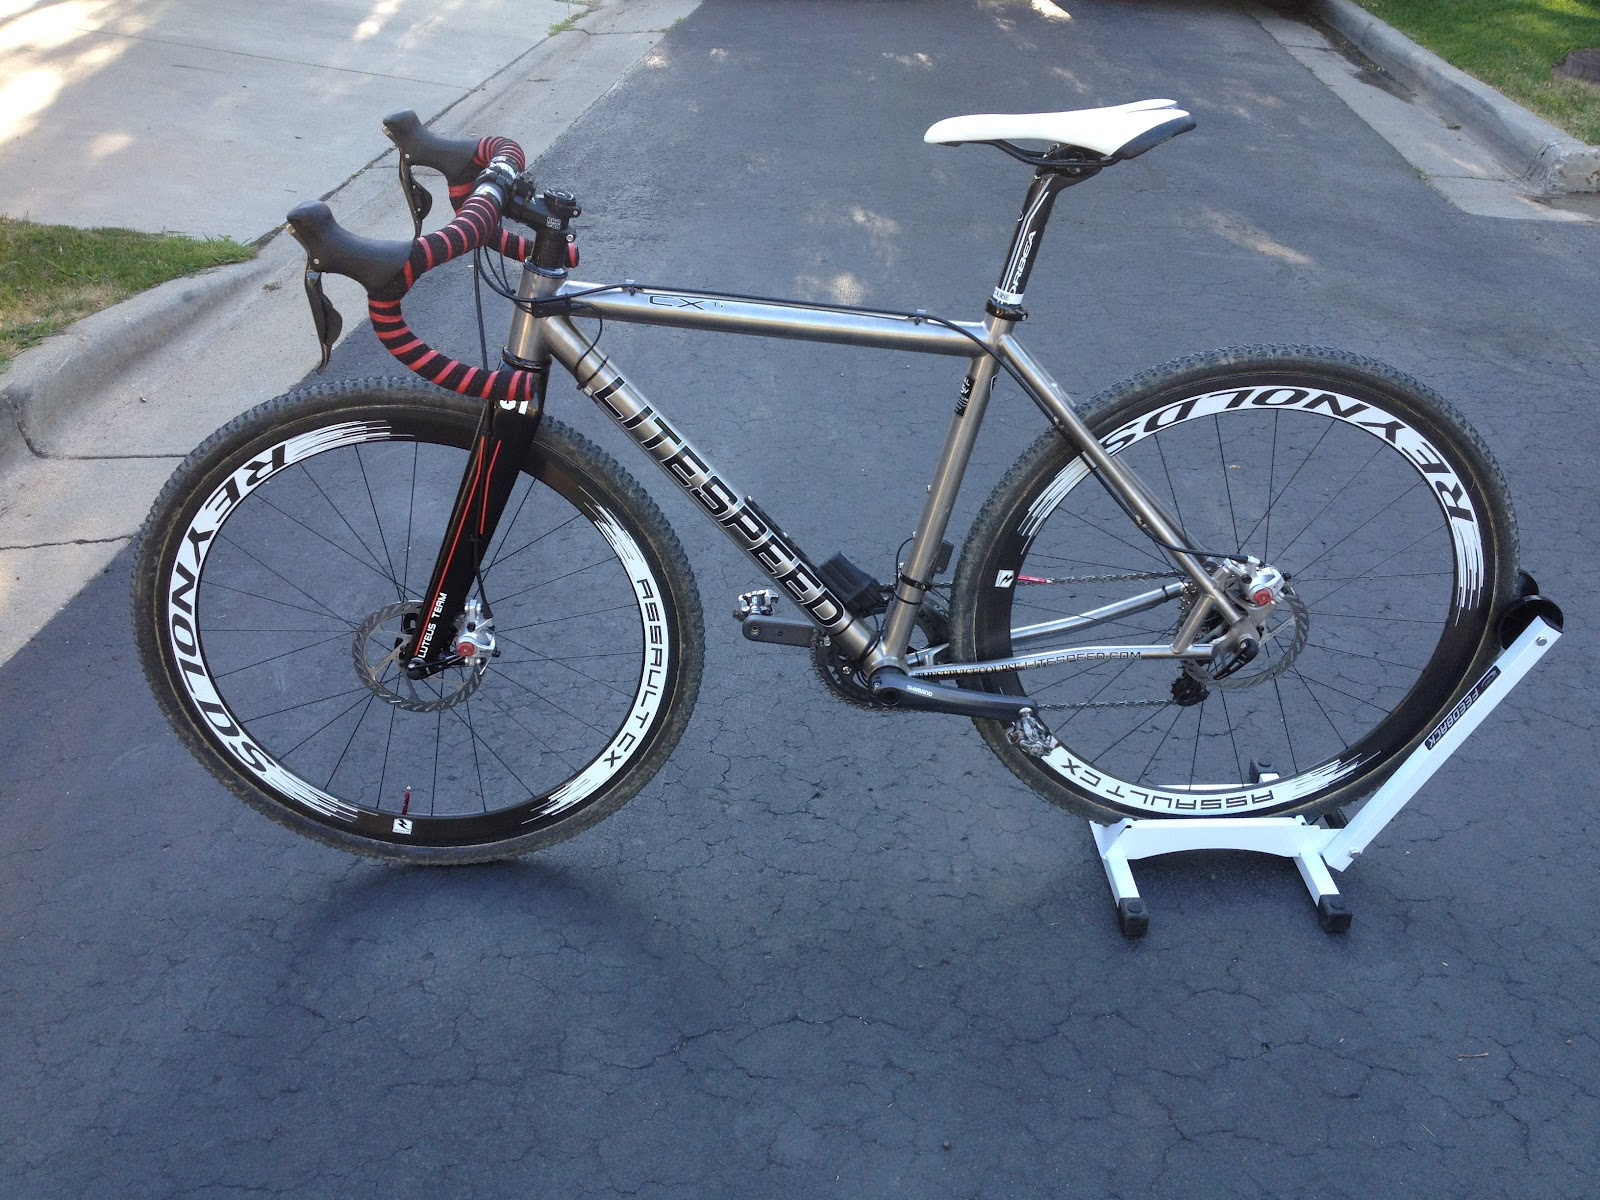 All in Good Fun: The new Litespeed CX is built!!!